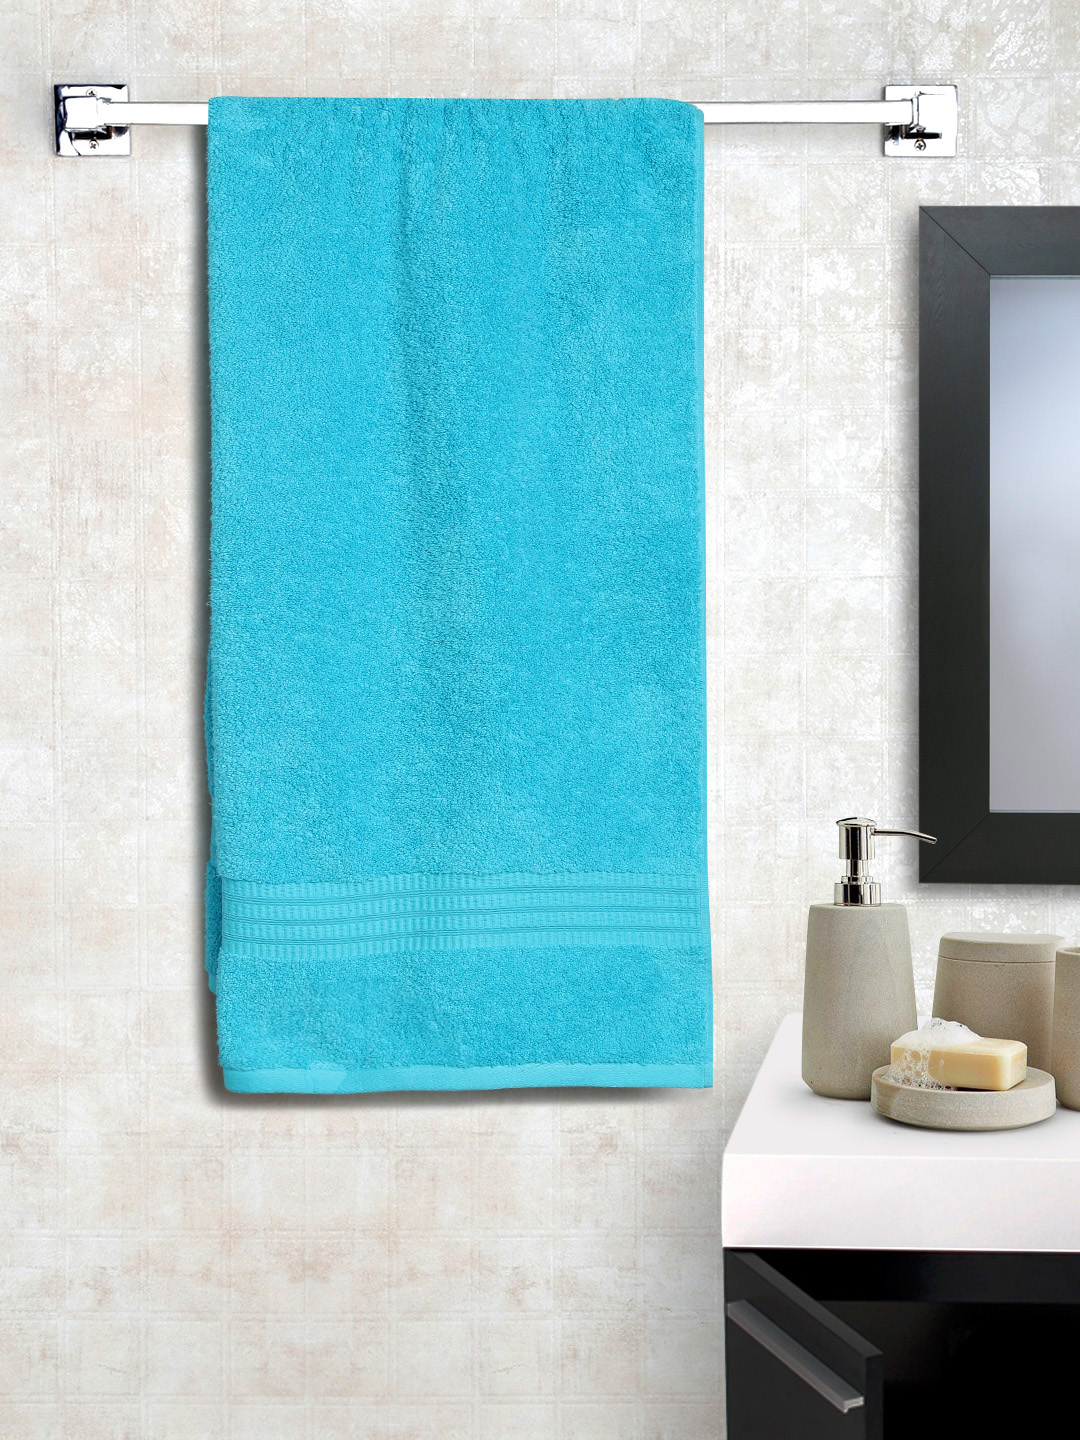 BOMBAY DYEING Turquoise Blue Cotton 650 GSM Bath Towel